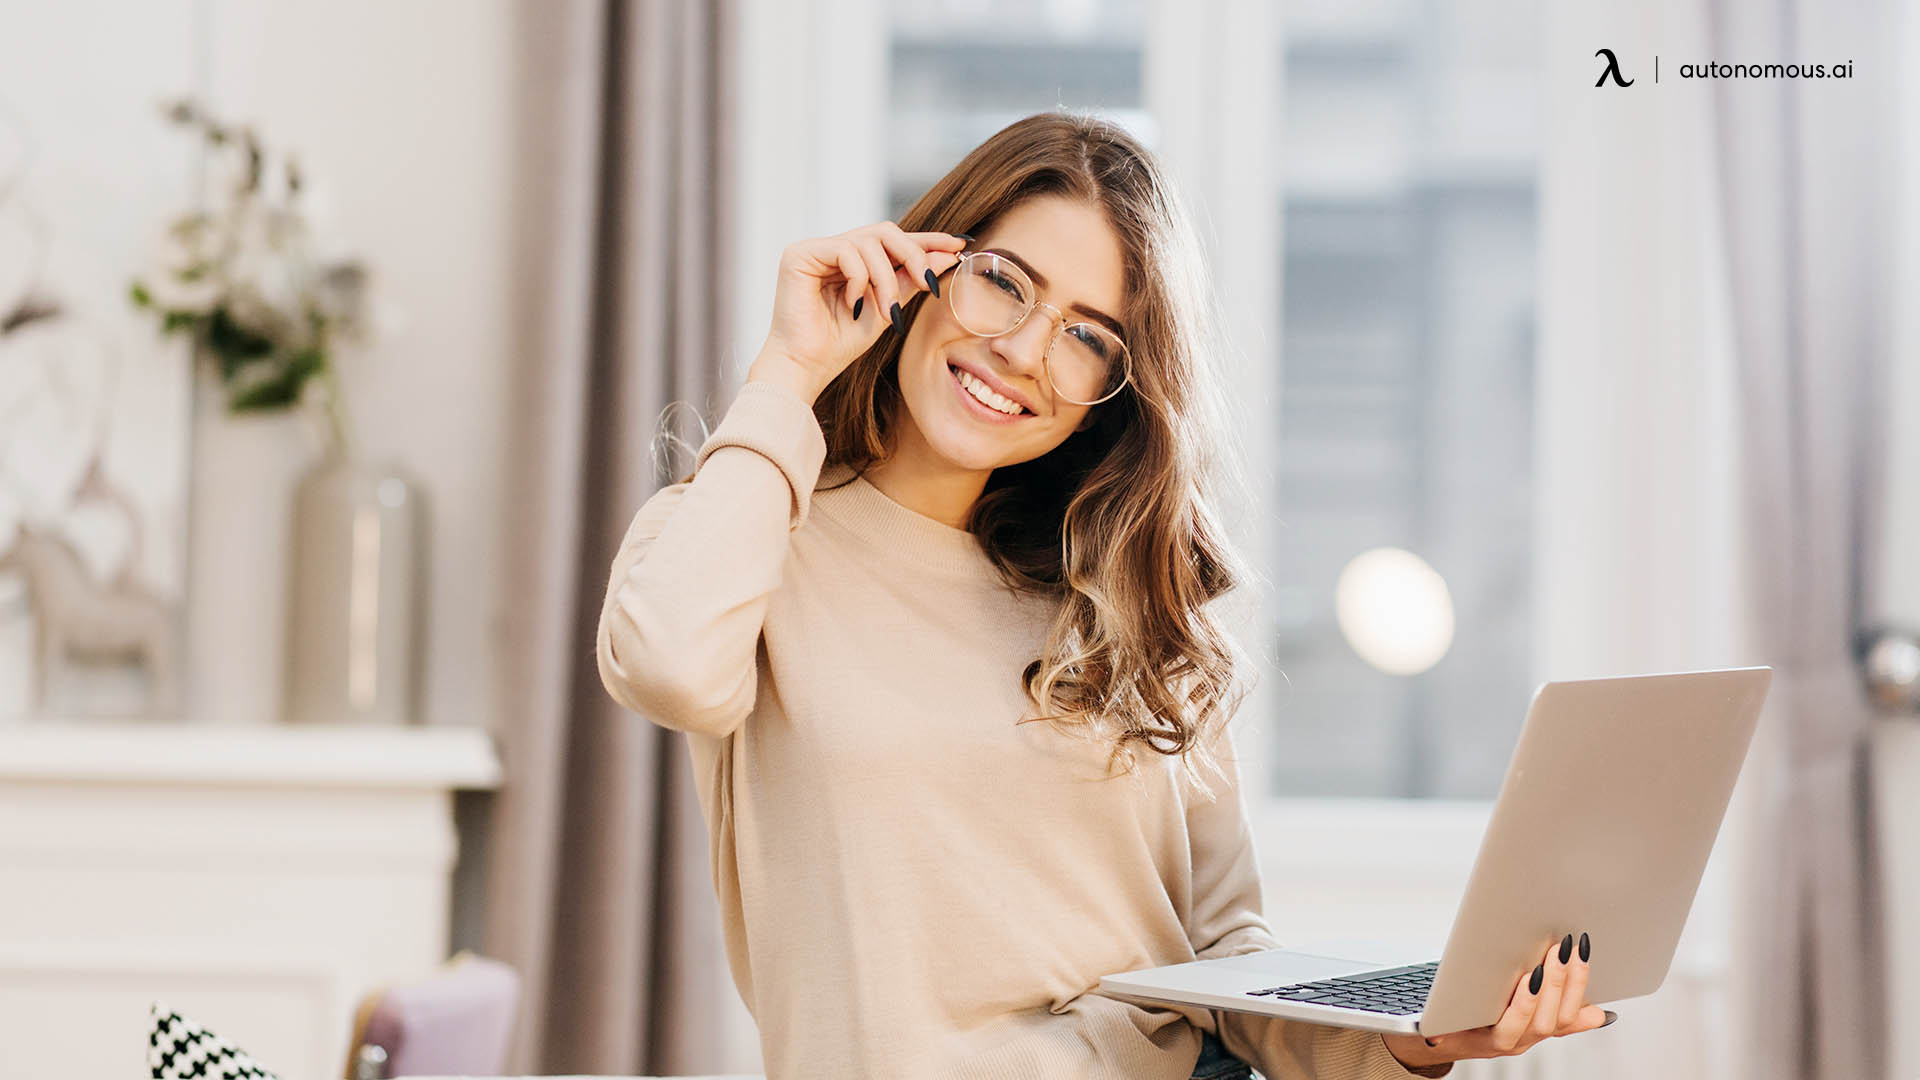 What Are the Benefits Of a Flexible Work Schedule